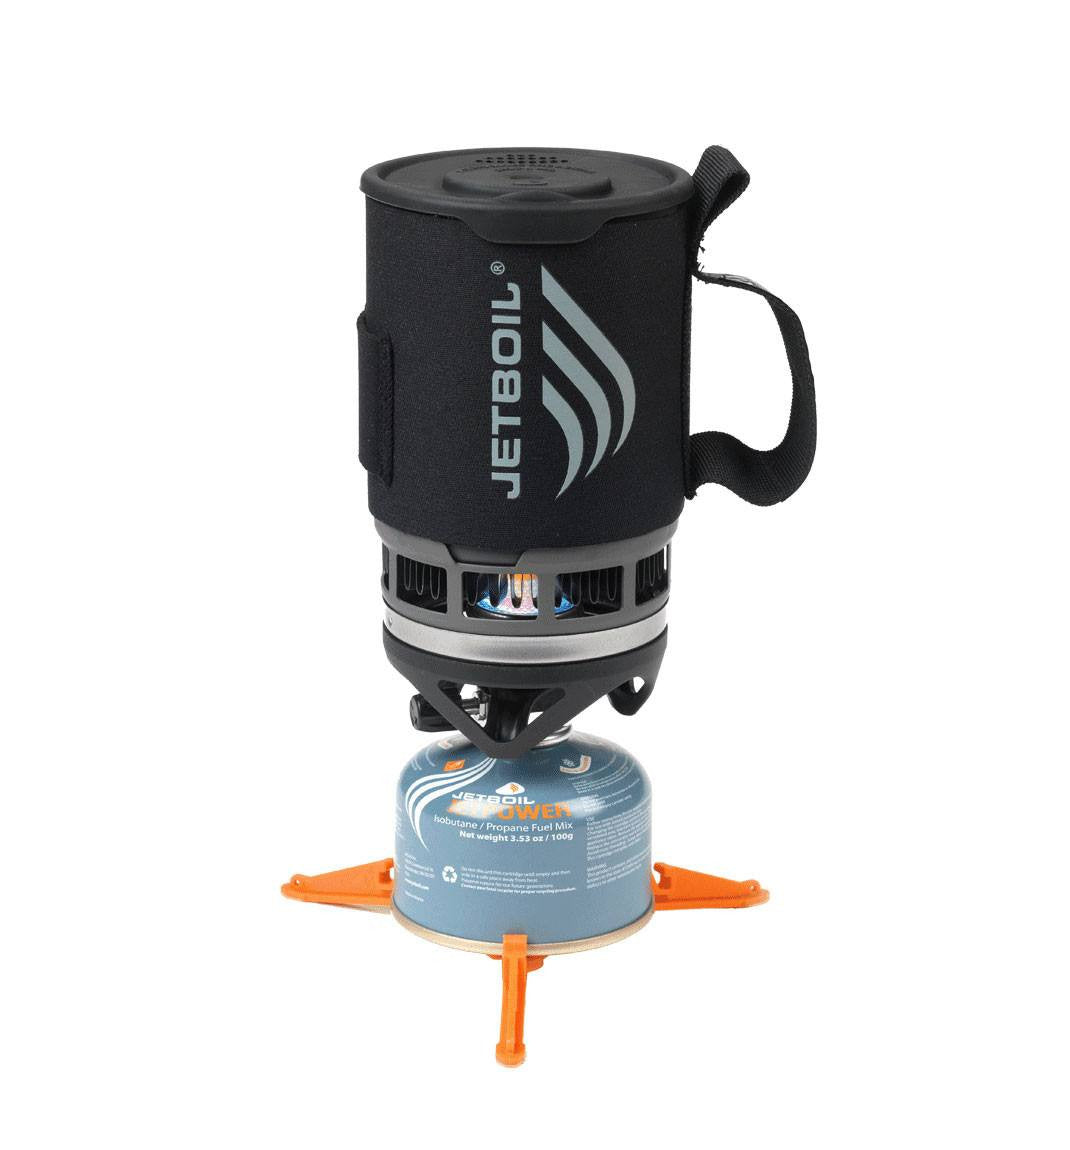 Jetboil Zip Carbon - Outdoor Living/Travel - Iron and Resin